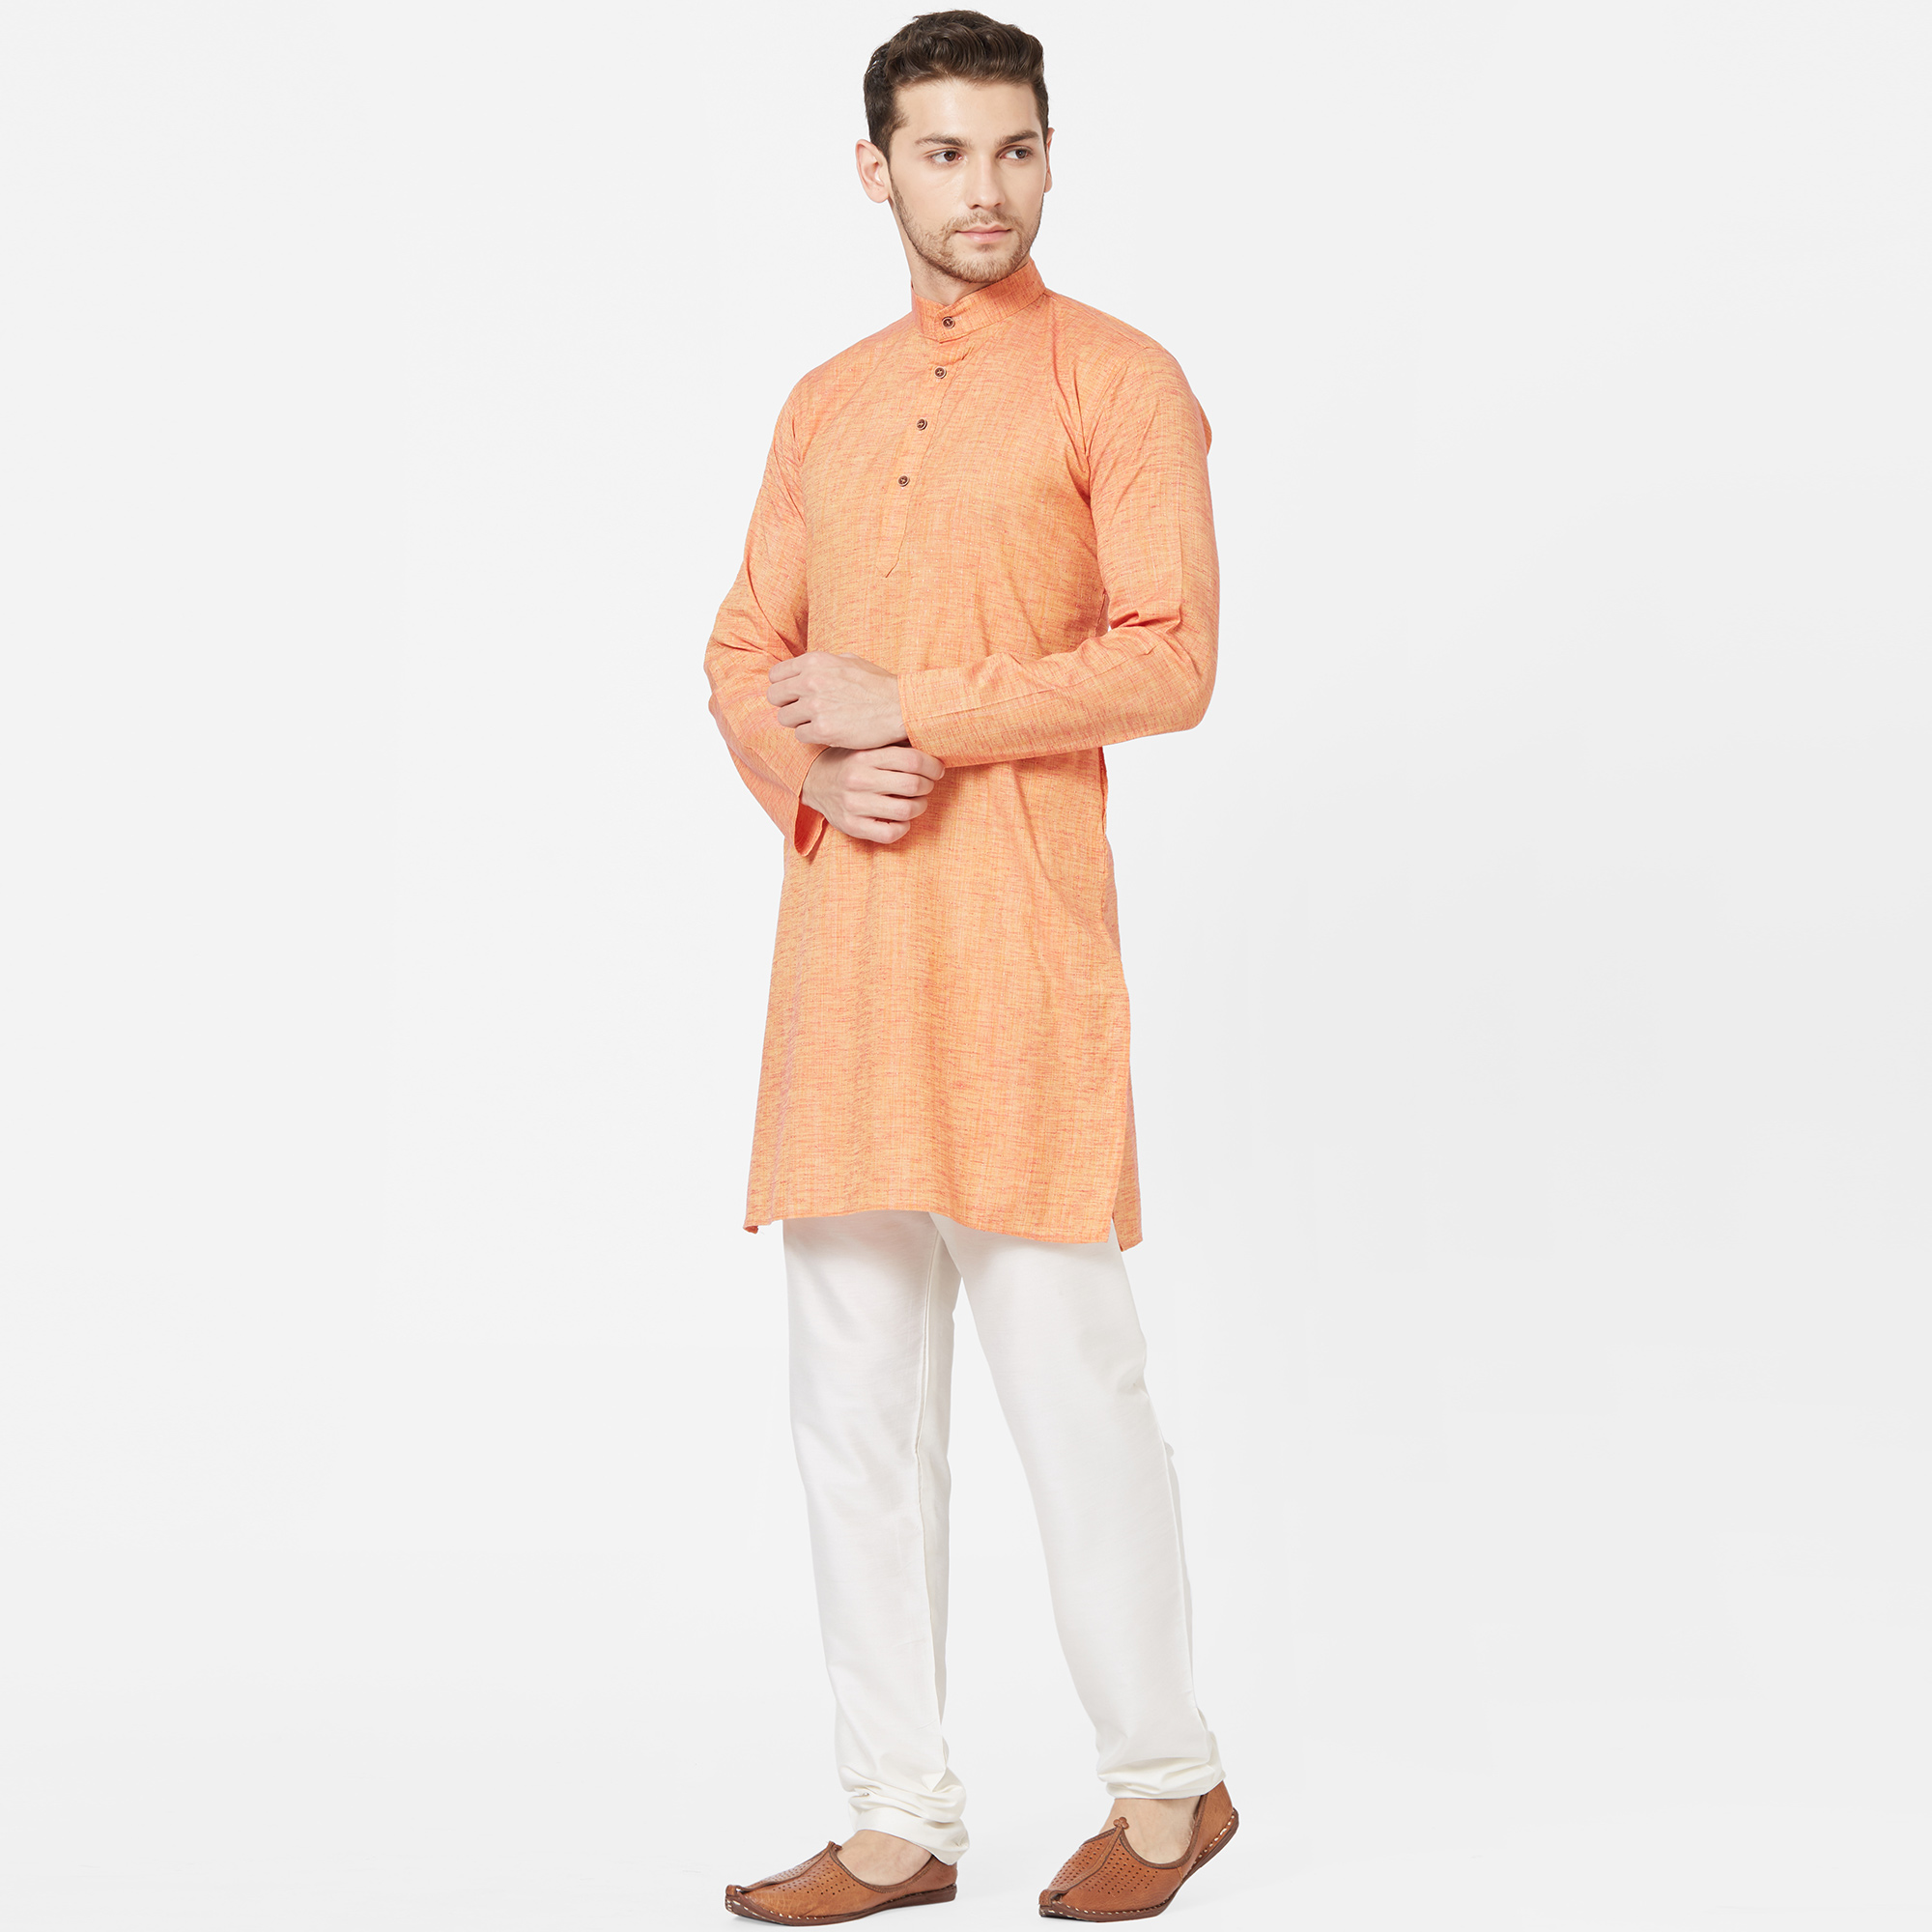 Exotic Orange Colored Festive Wear Cotton Kurta